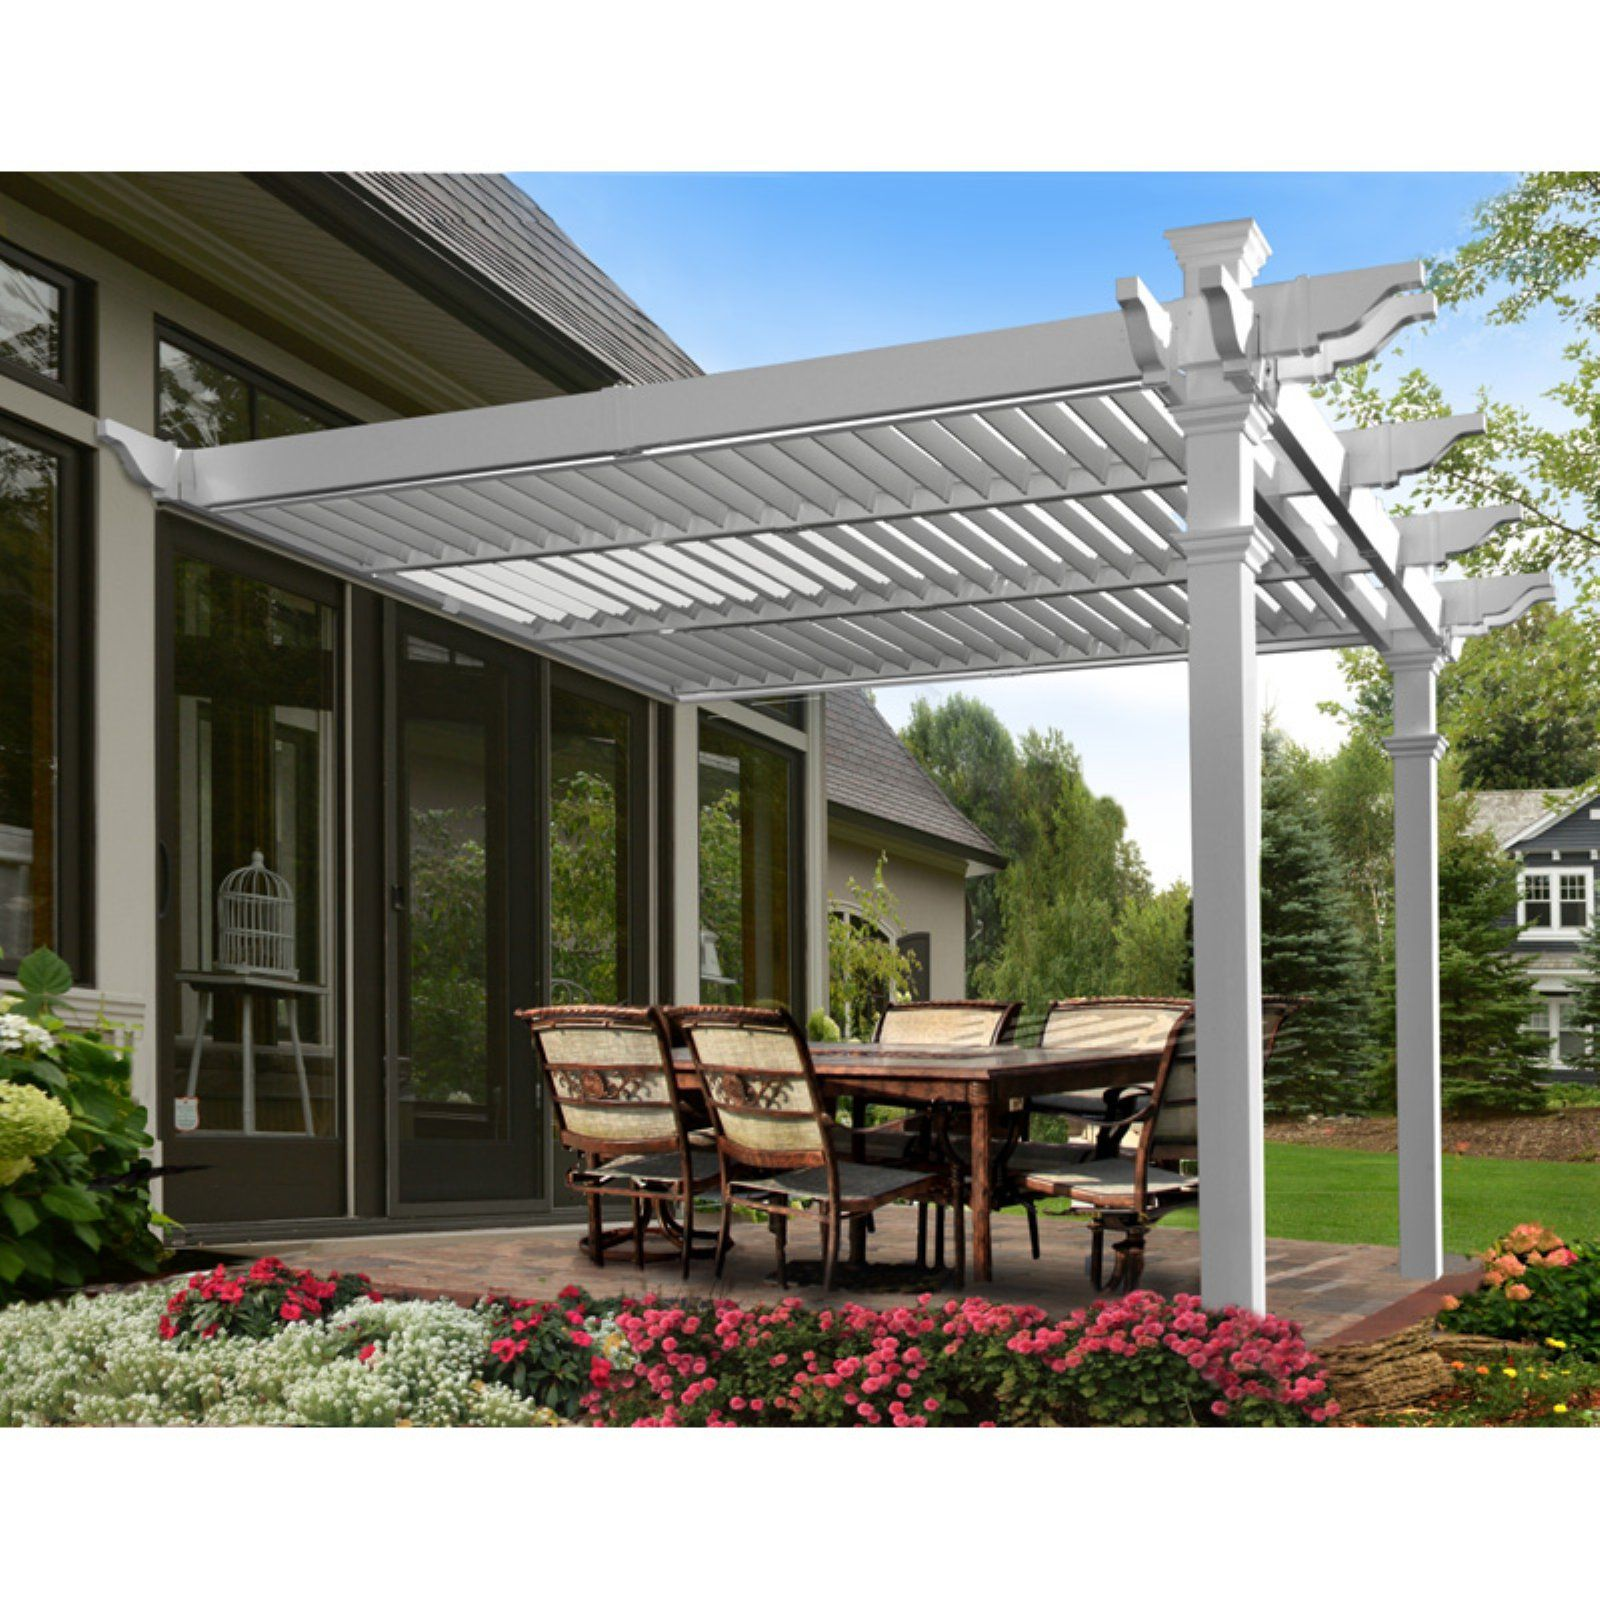 Elysium 12 X 12 Attached Louvered Vinyl Pergola White Walmart Com In 2020 Pergola Pergola Plans Louvered Pergola